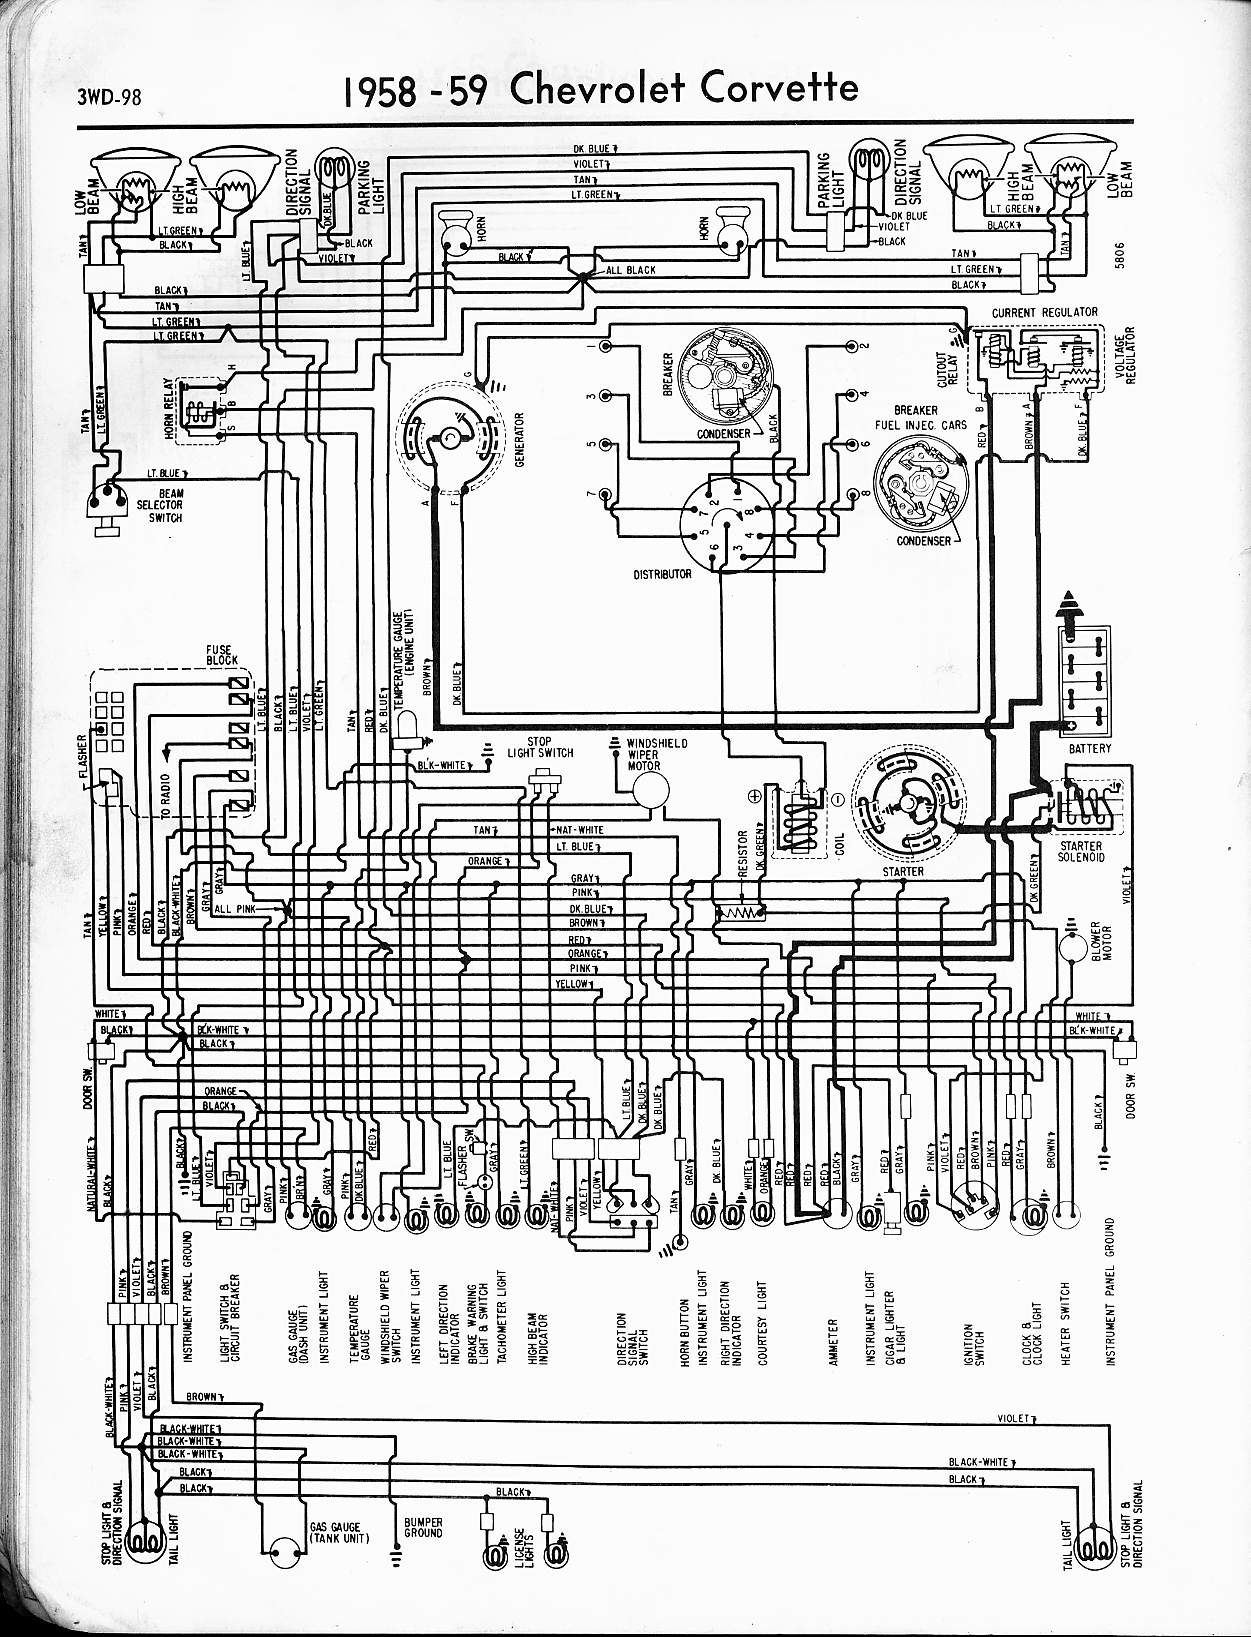 1979 Jeep Cj7 Wiring Diagram Colored Wire Data Schema 85 Headlight Switch 1965 Cj5 Schematic Diagrams U2022 Rh Arcomics Co Renegade